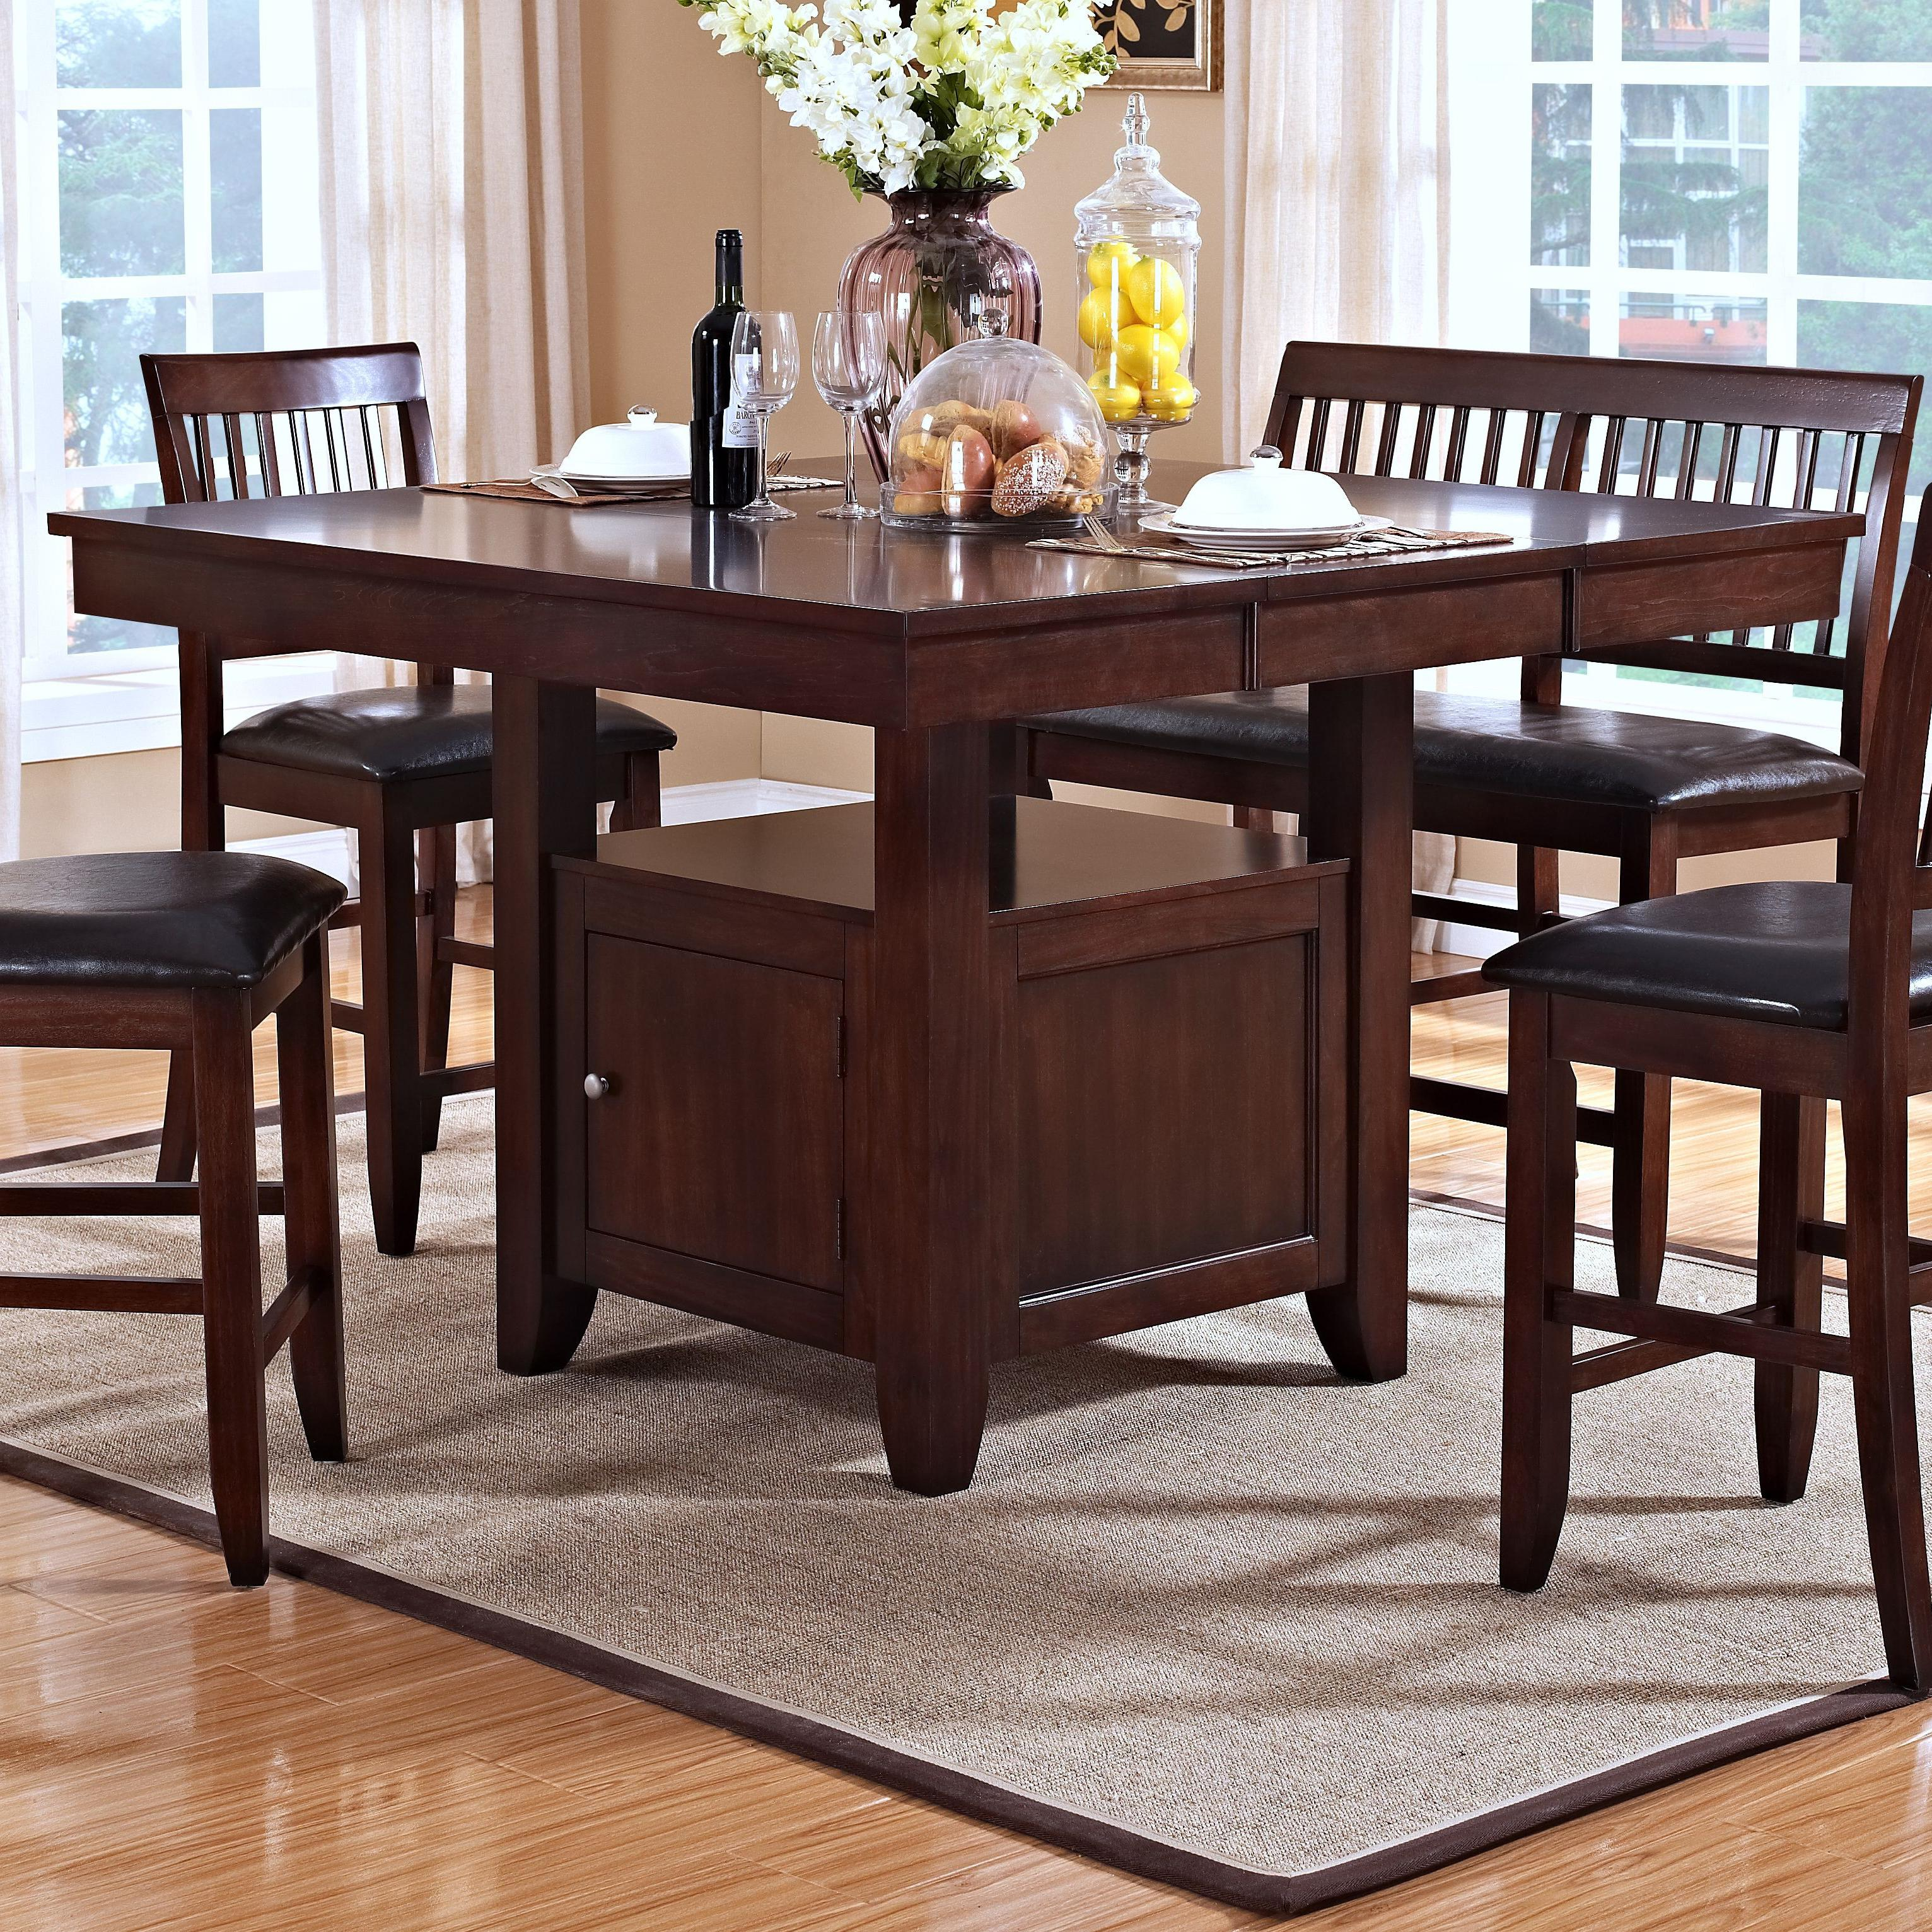 new classic kaylee counter height table with storage pedestal base del sol furniture pub table. Black Bedroom Furniture Sets. Home Design Ideas